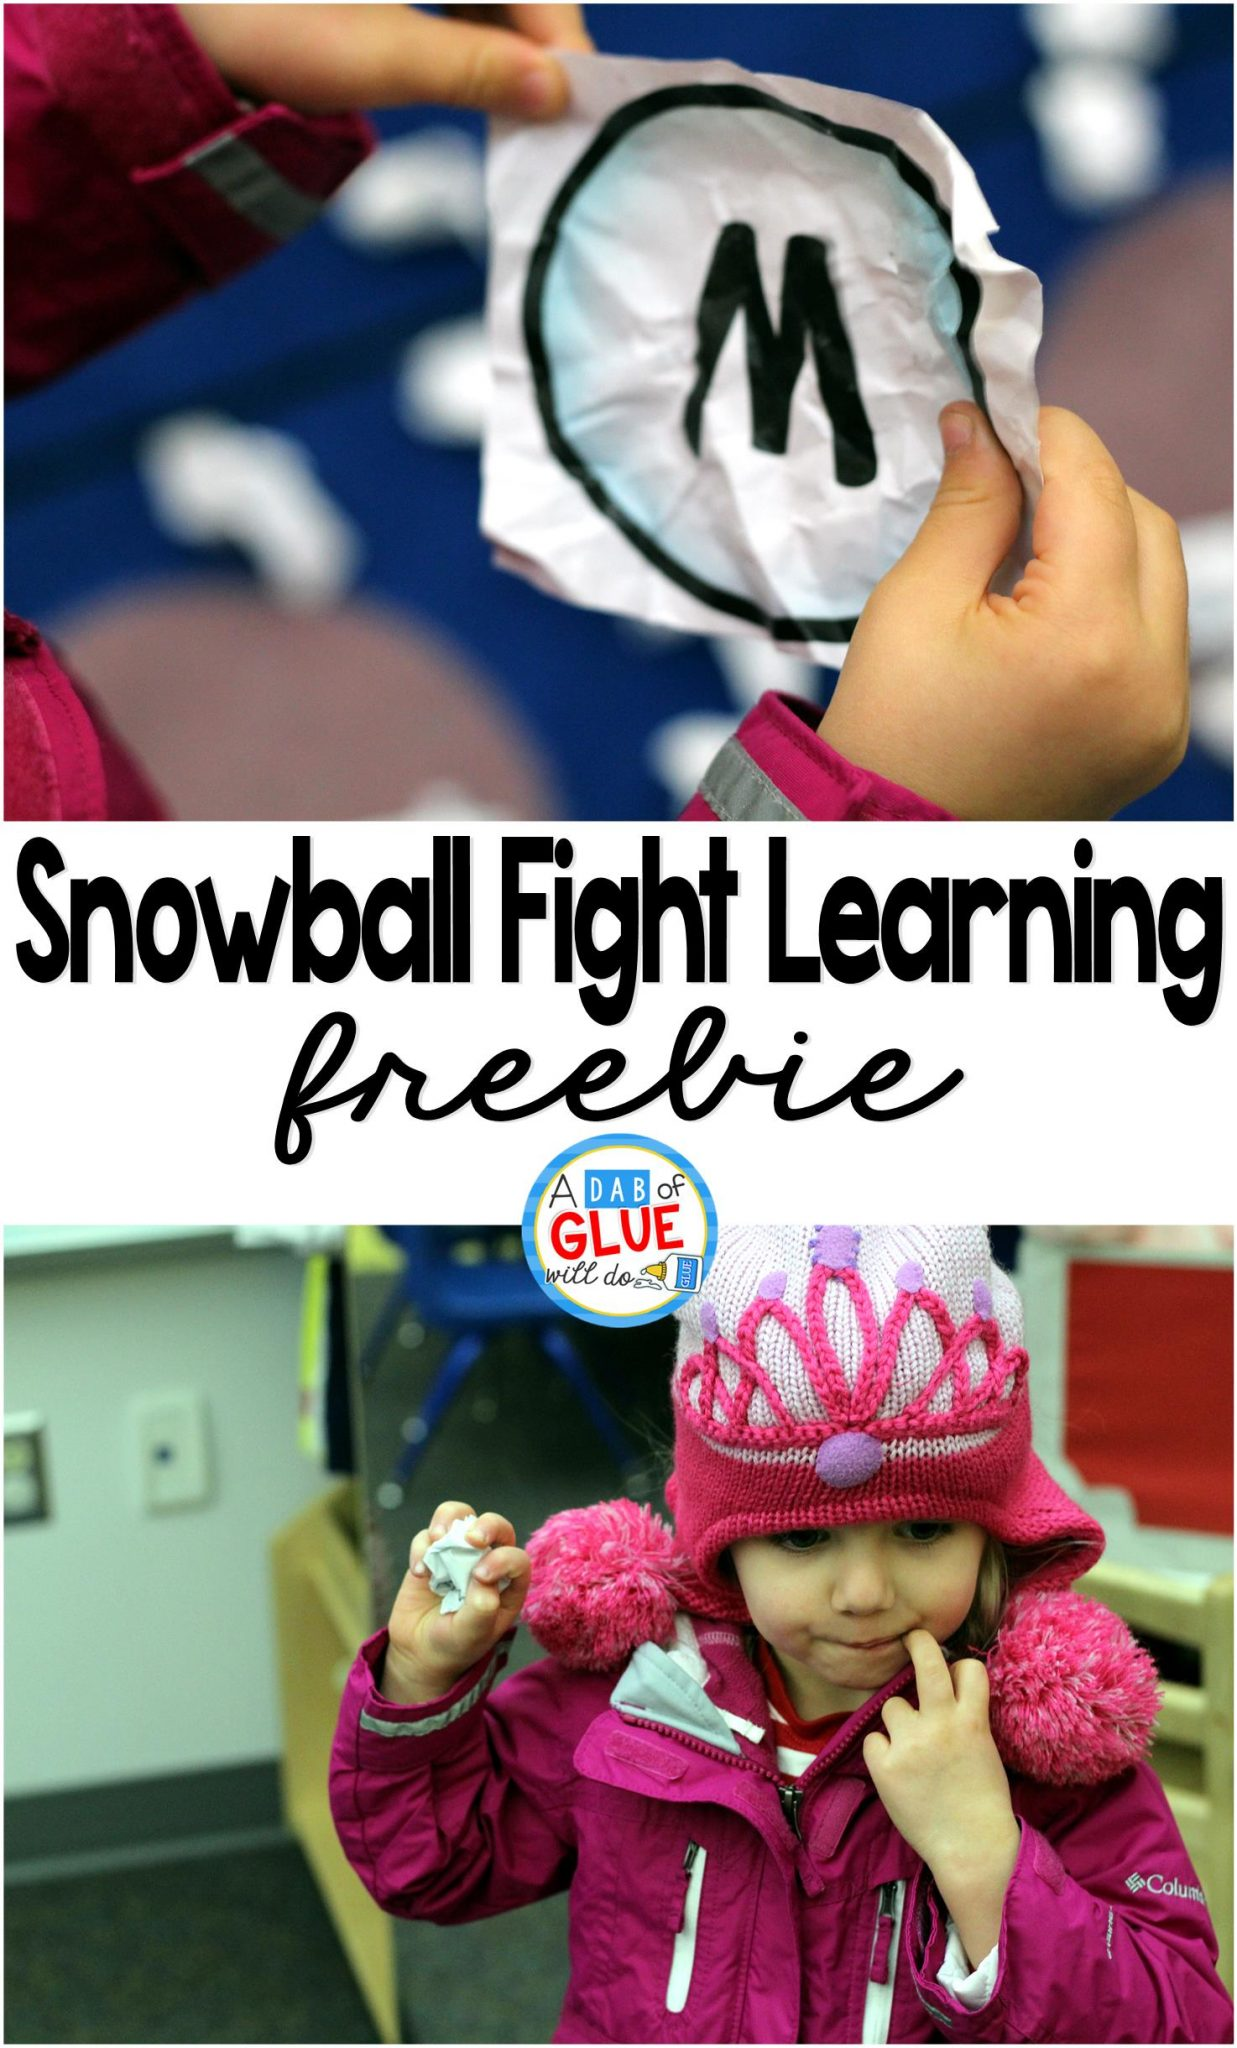 Snowball Fight Learning is a fun, hands-on activity for students to review whatever they are learning in the classroom. This free printable and activity is perfect for preschool, kindergarten, and first grade students.